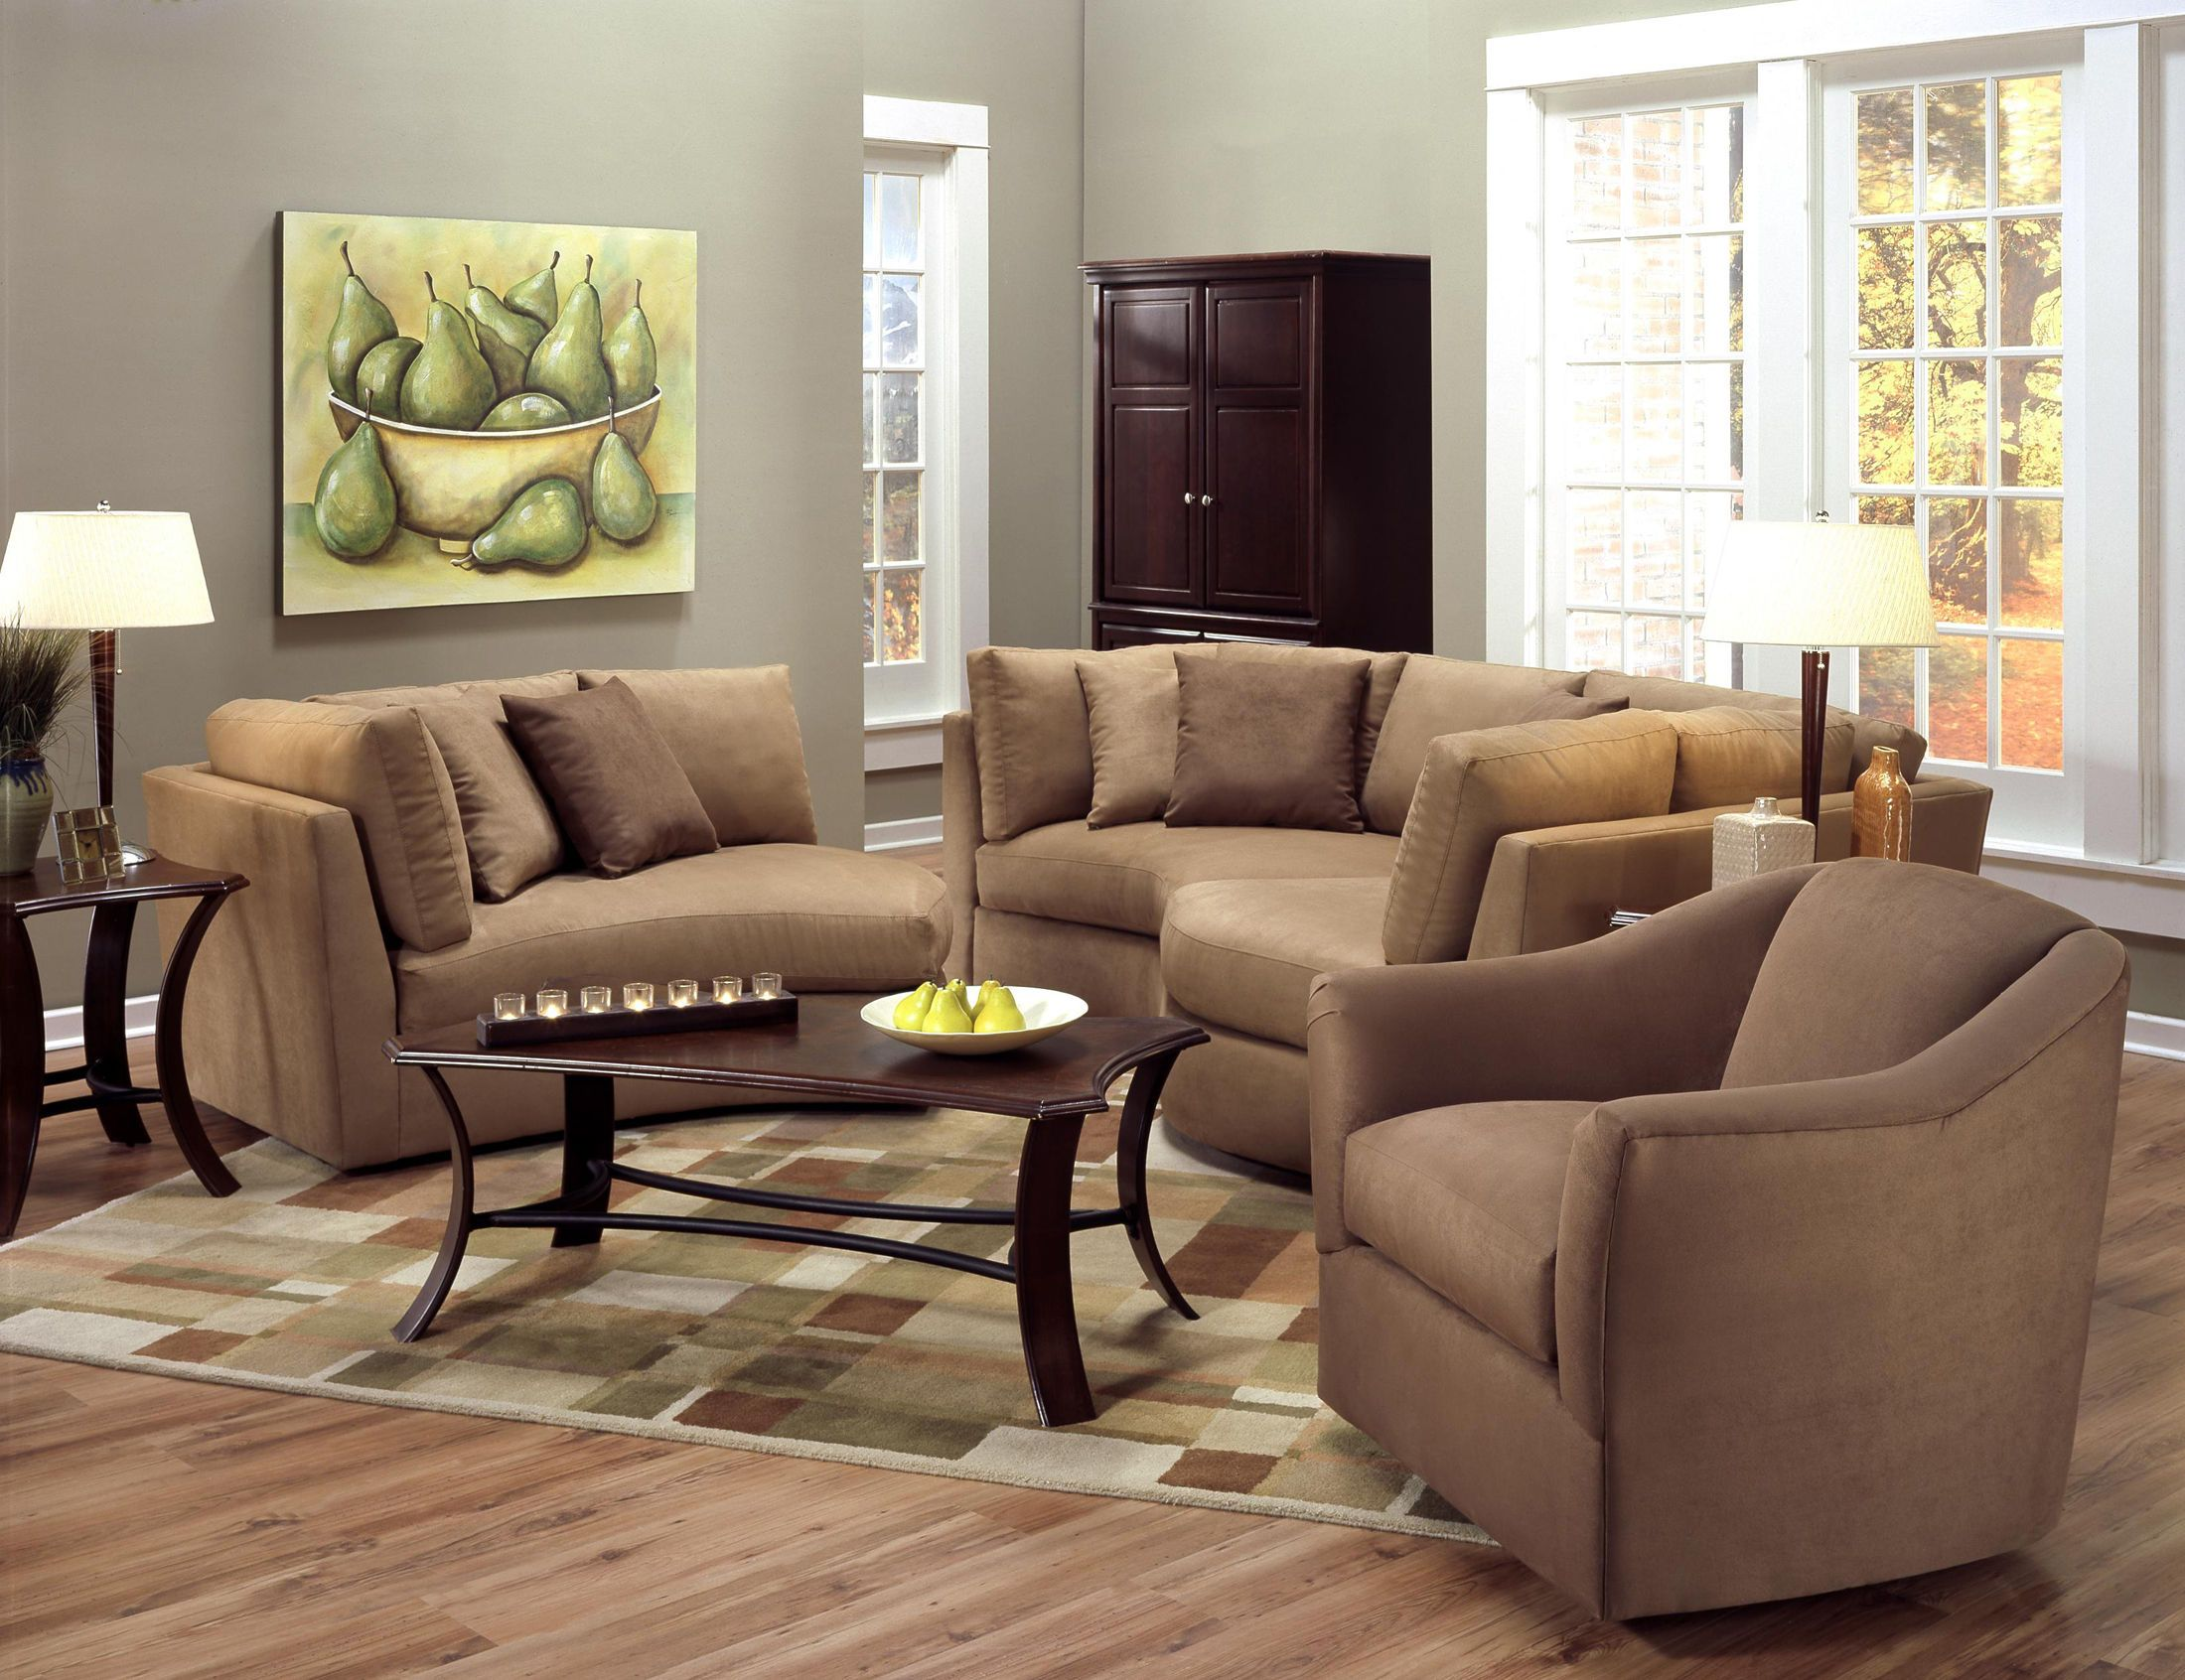 This 3 piece sectional fits together like a puzzle - a very comfy ...